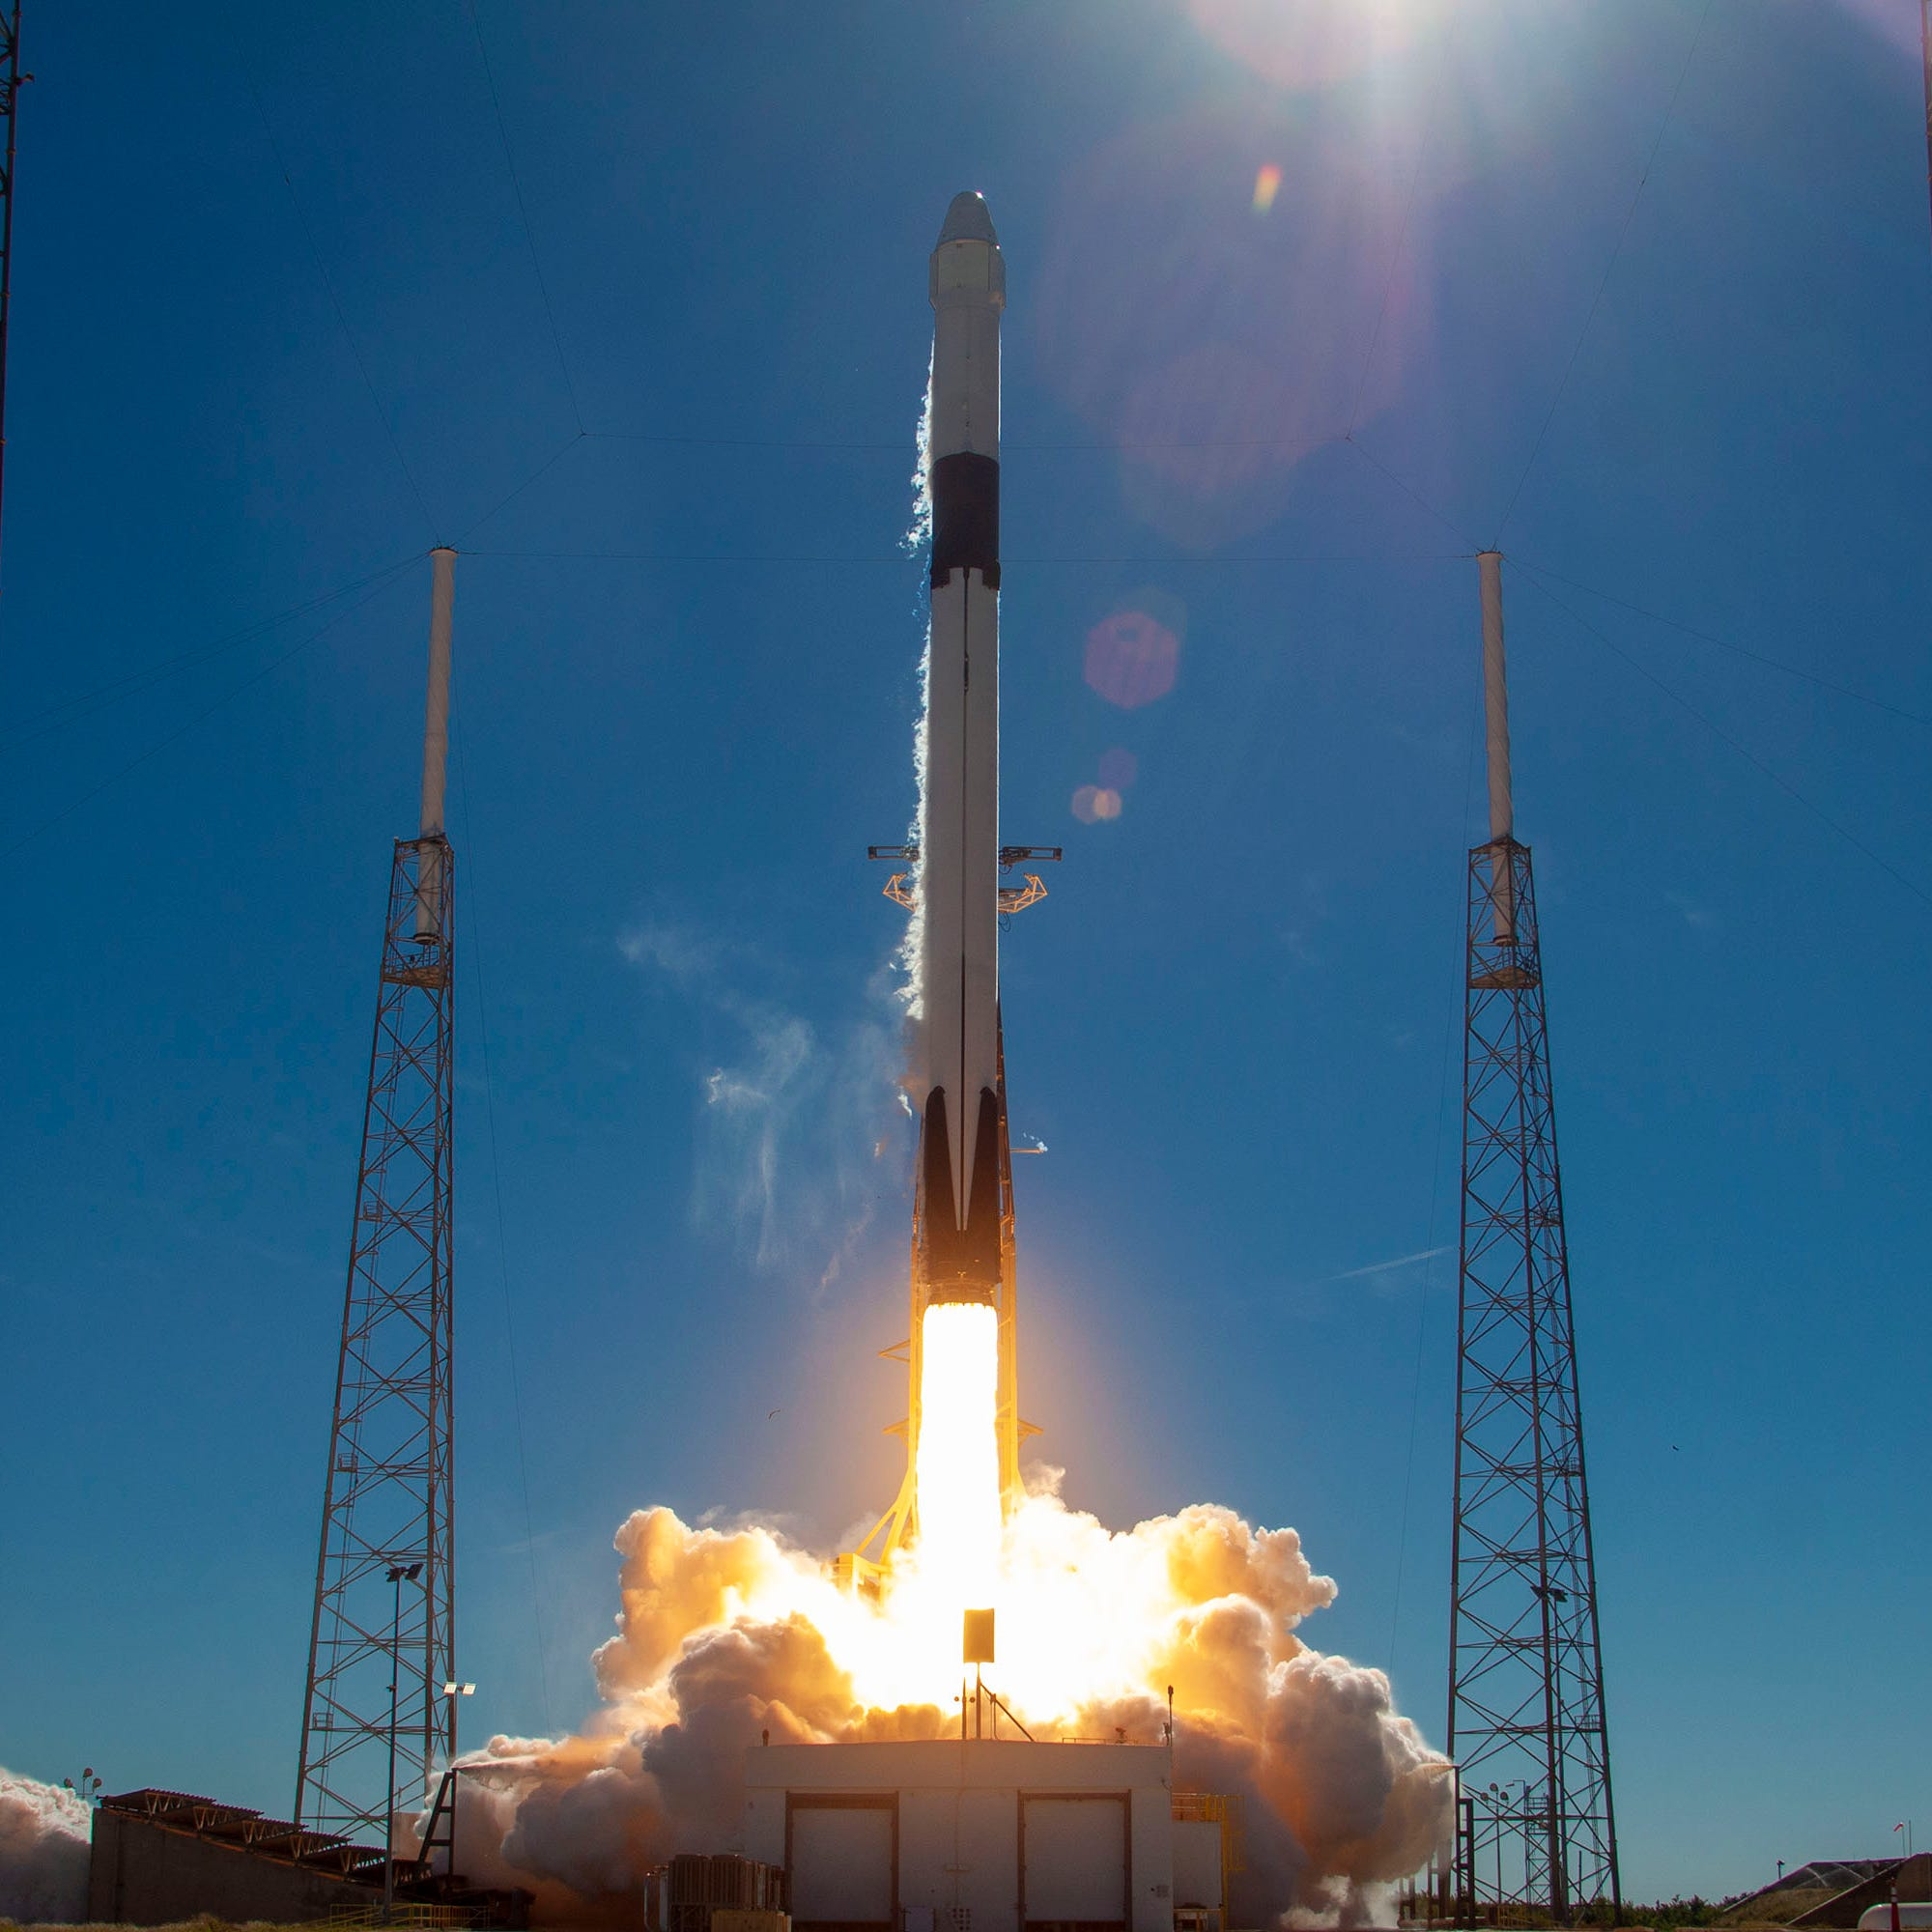 SpaceX Falcon 9: Why everyone should wake up to watch this rocket launch